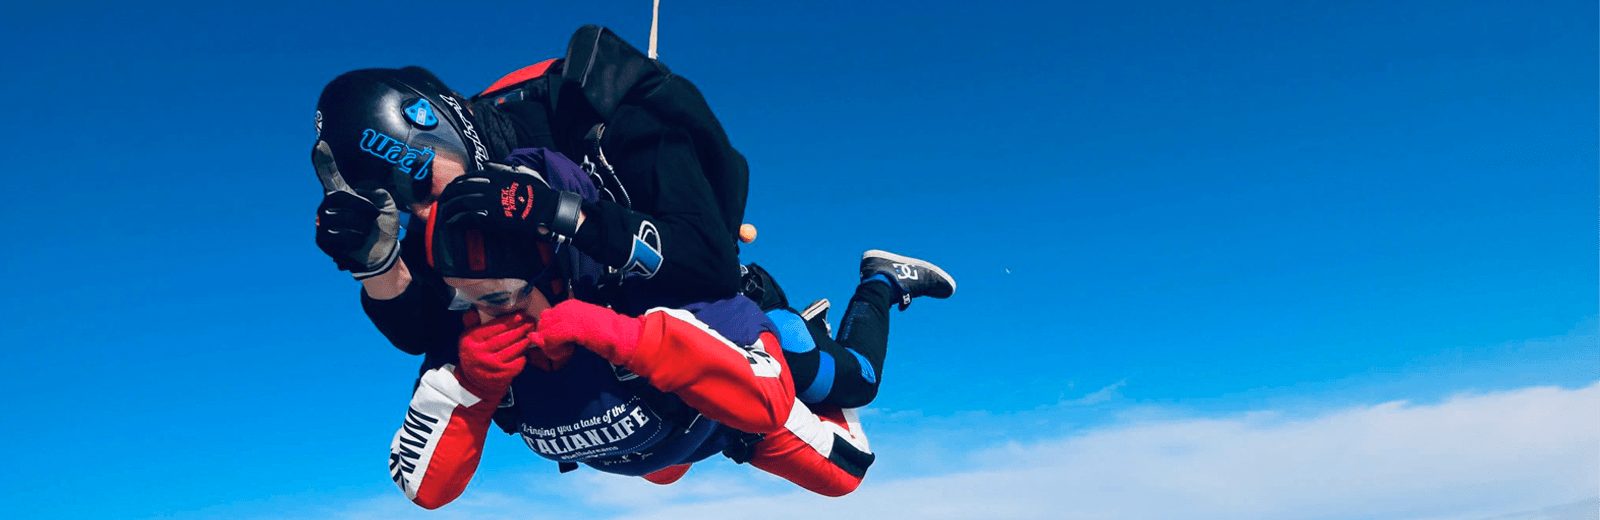 skydive header